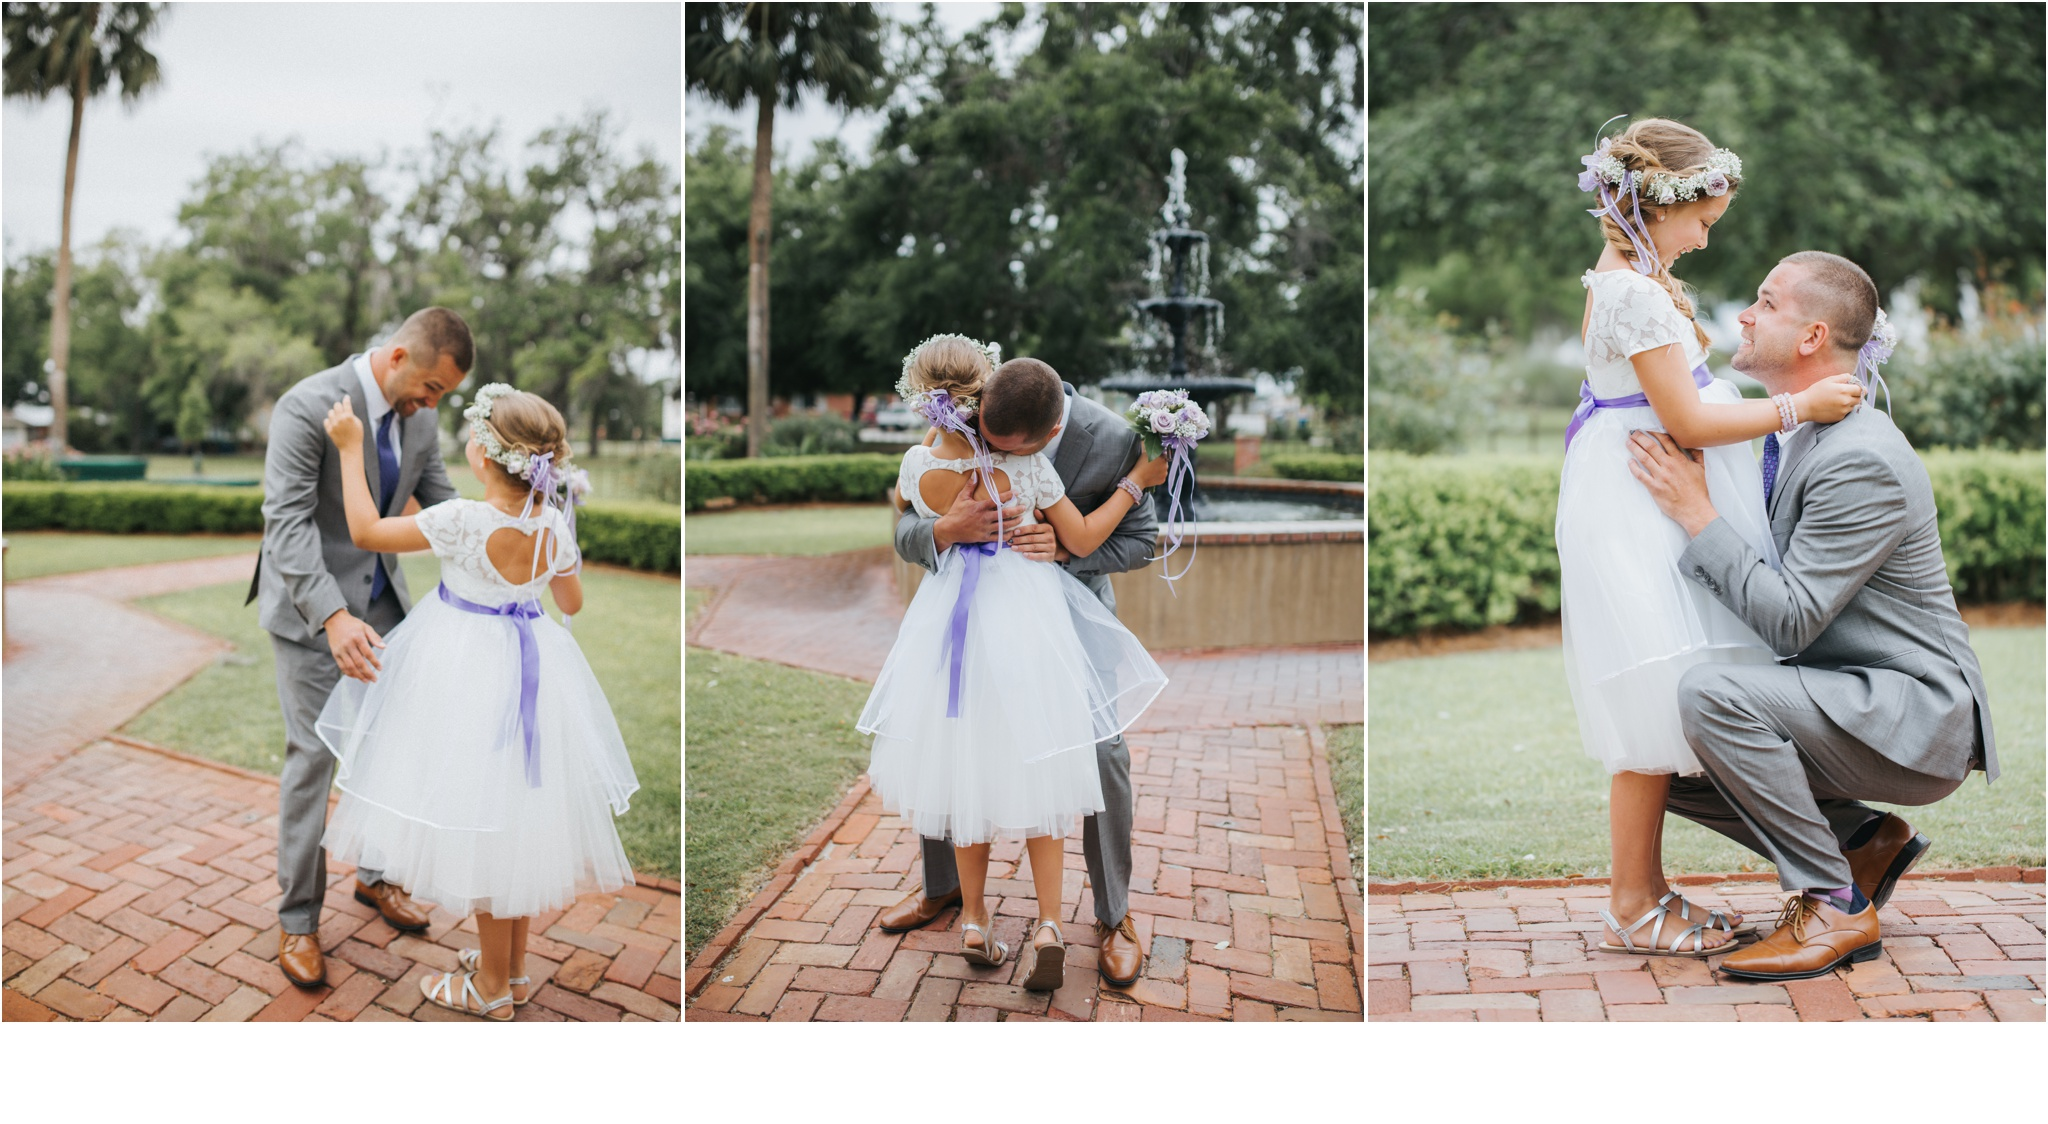 Rainey_Gregg_Photography_St._Simons_Island_Georgia_California_Wedding_Portrait_Photography_1495.jpg